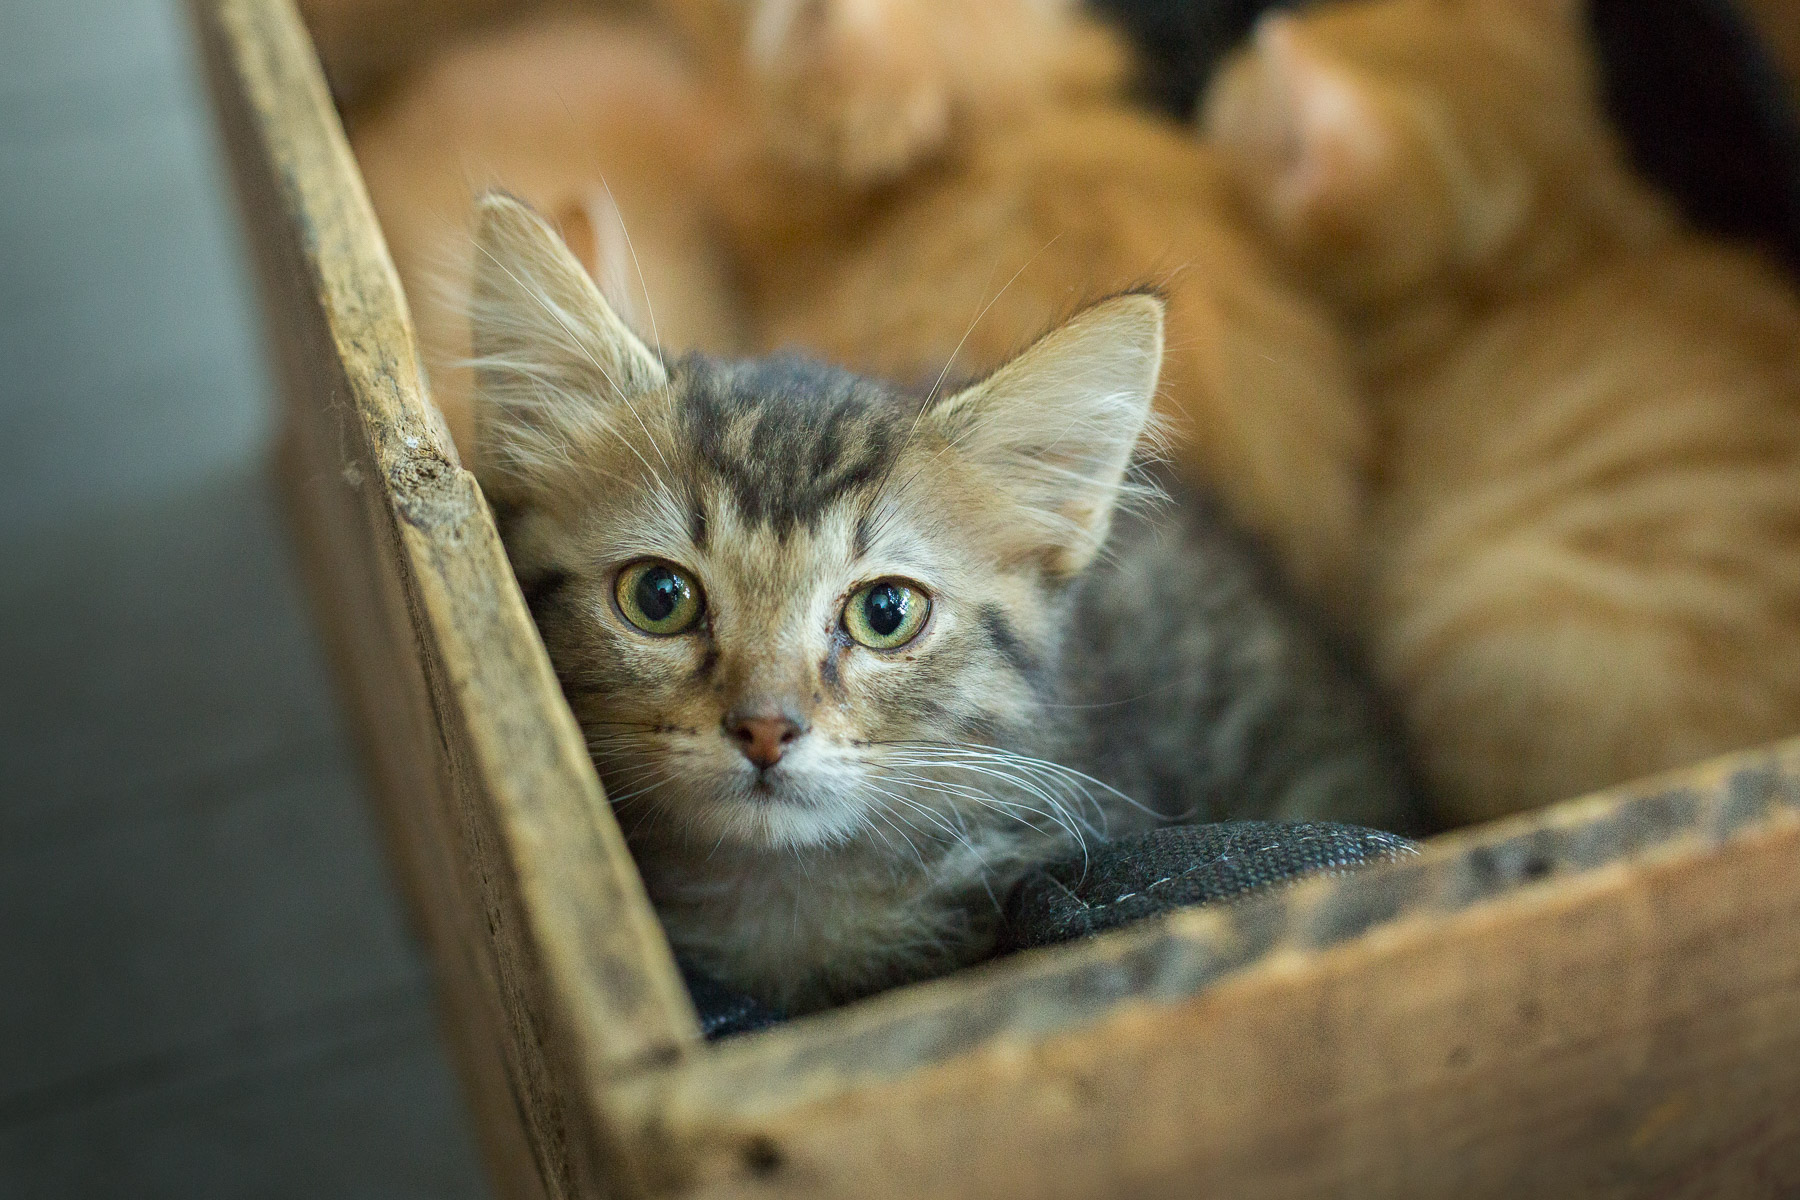 little-cat-kitty-looking-camera-cat-photography.jpg